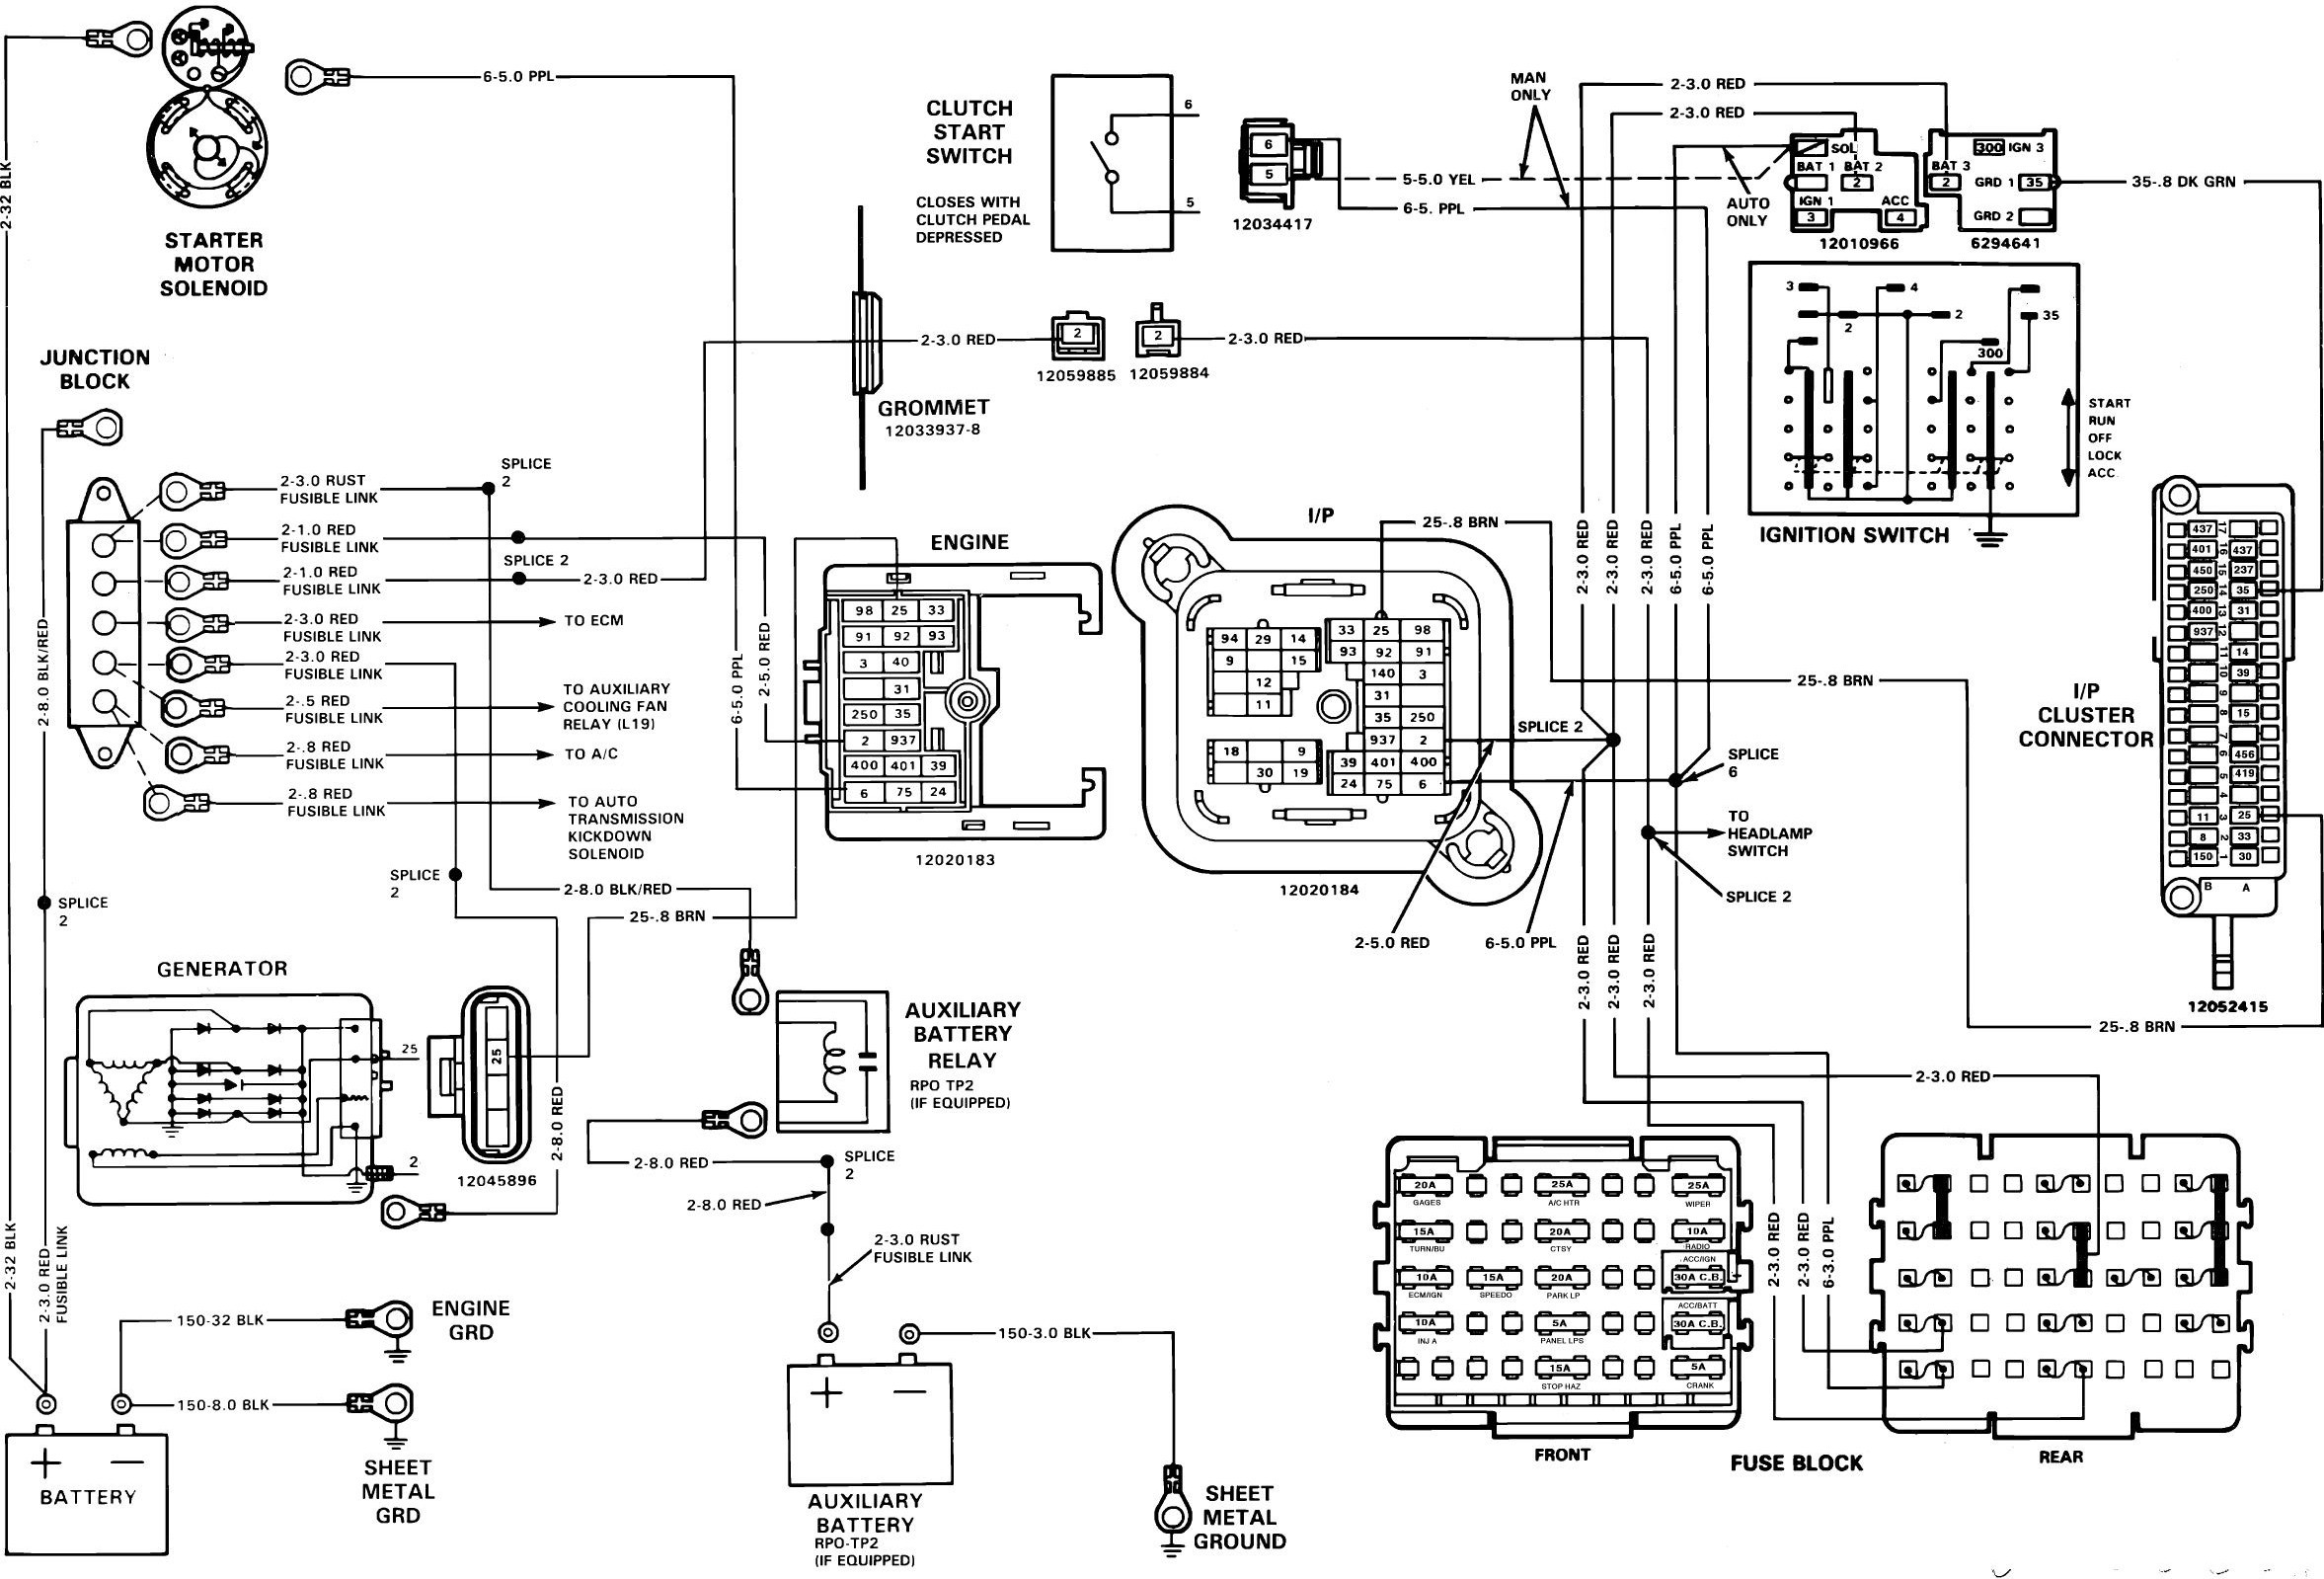 1989 gmc headlight wiring diagrams | wiring library 1989 dodge wiring harness diagram 1989 gmc wiring harness